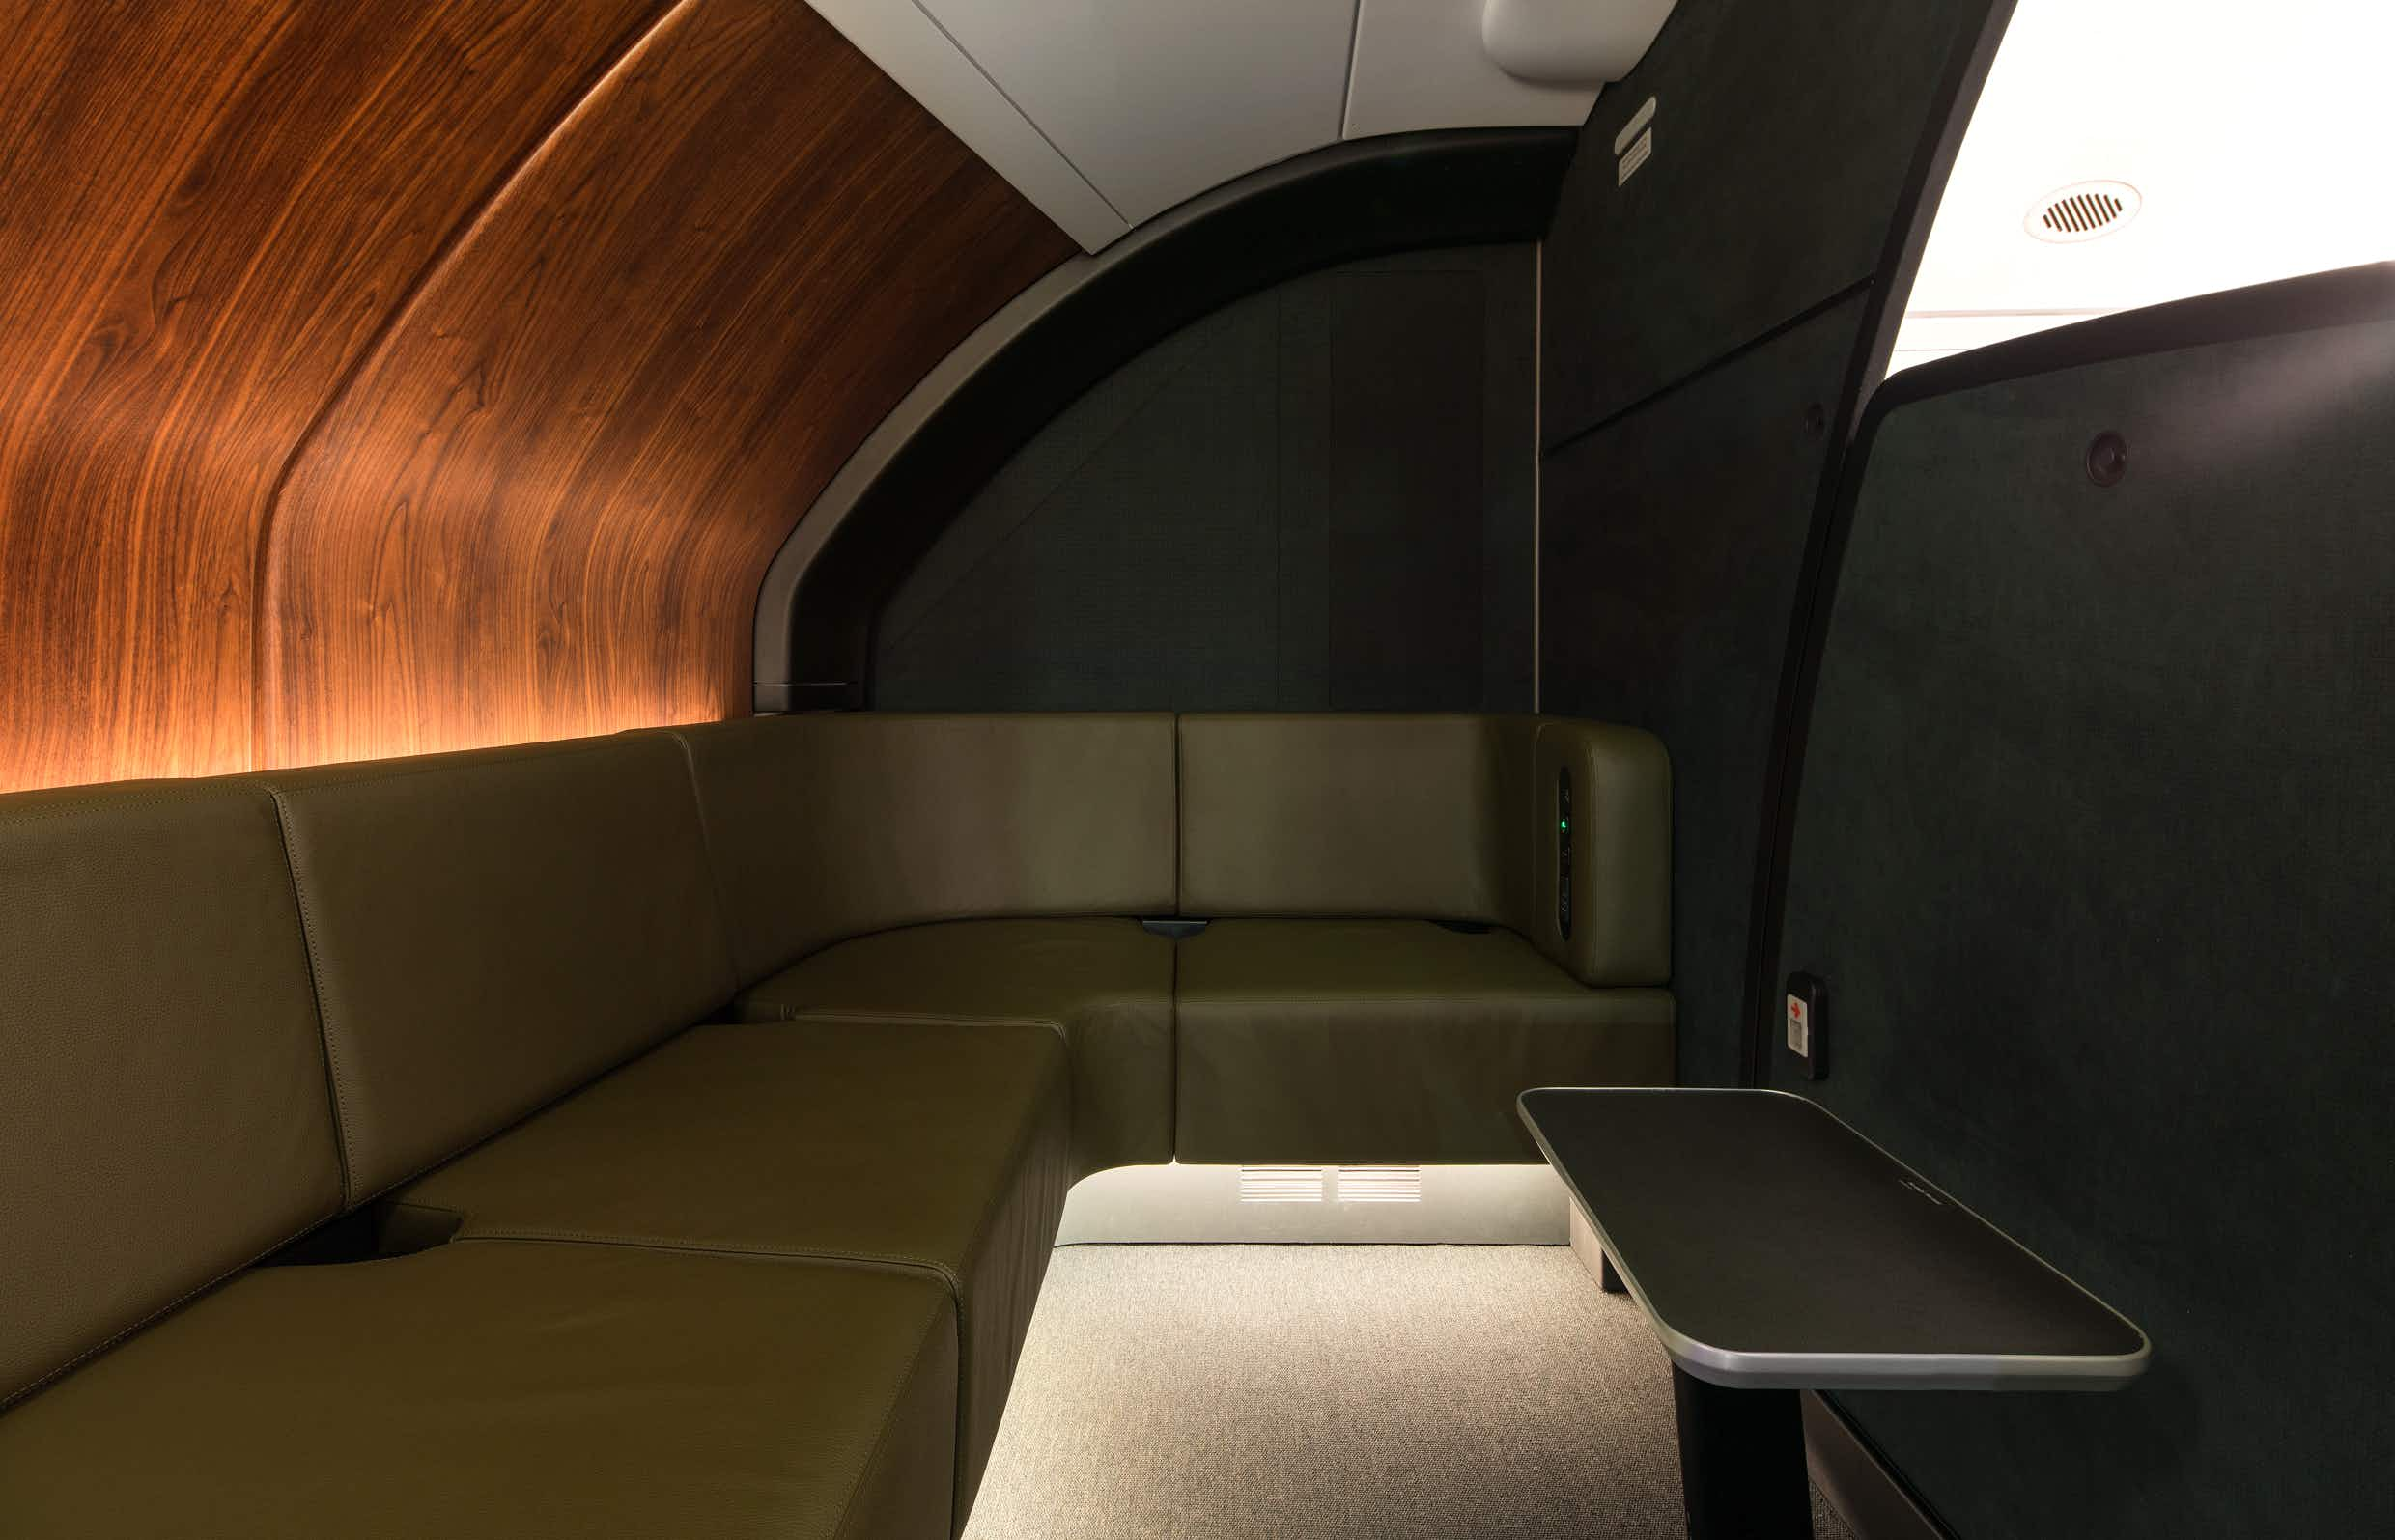 There is a special onboard lounge area for premium passengers on Qantas © Qantas